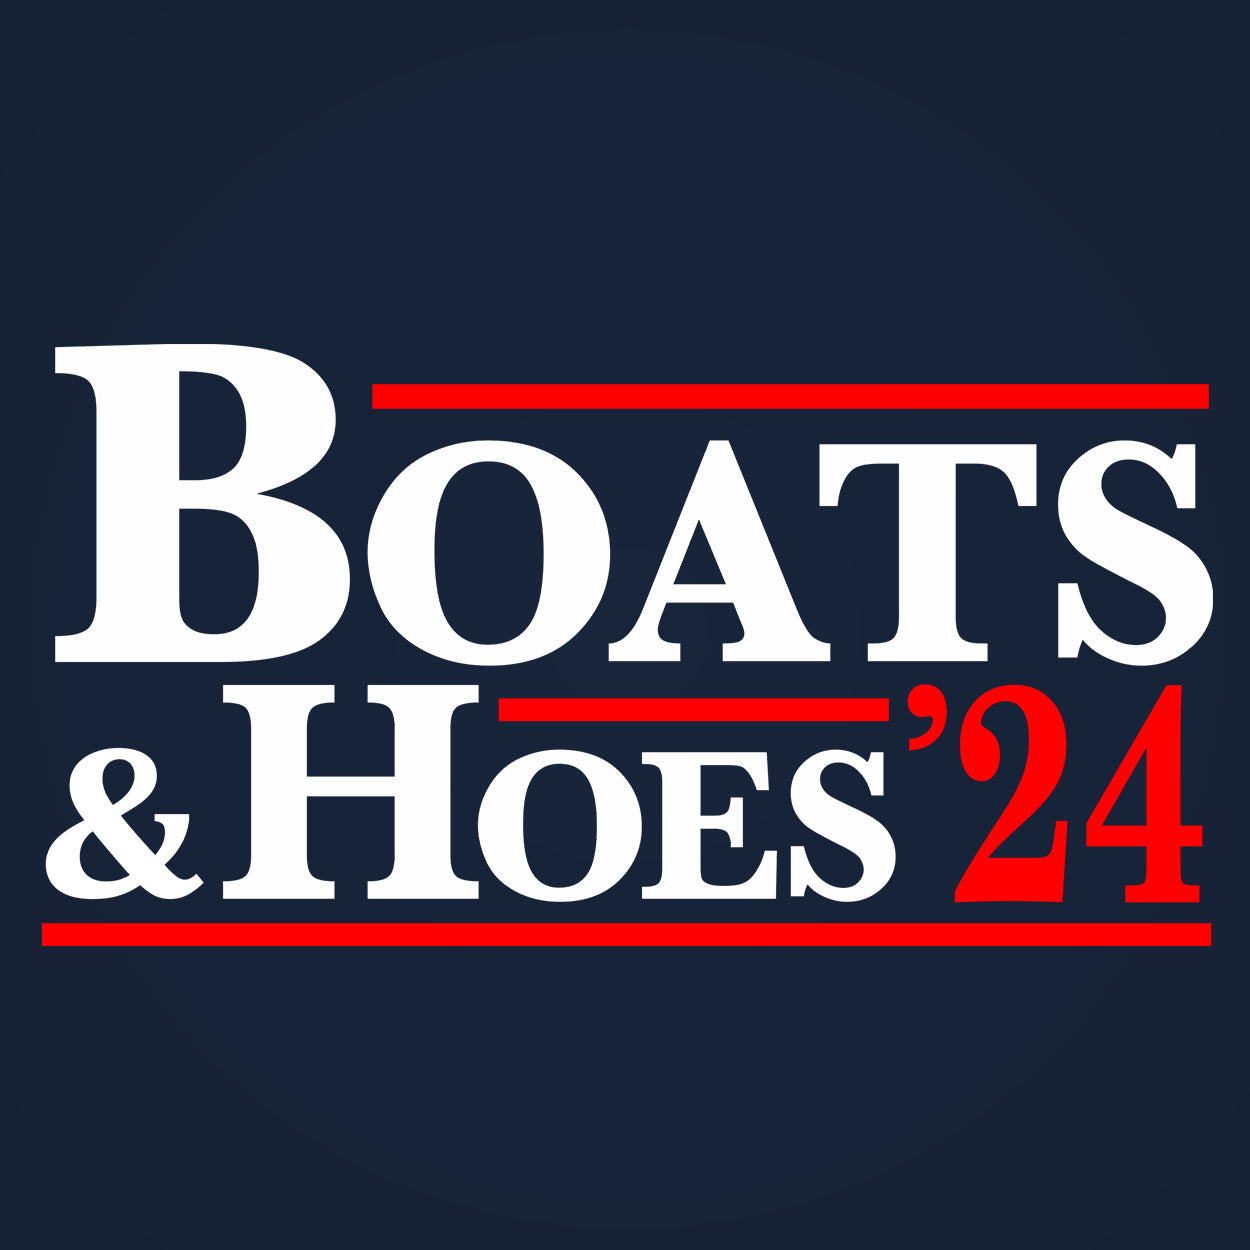 Boats And Hoes 2024 Election